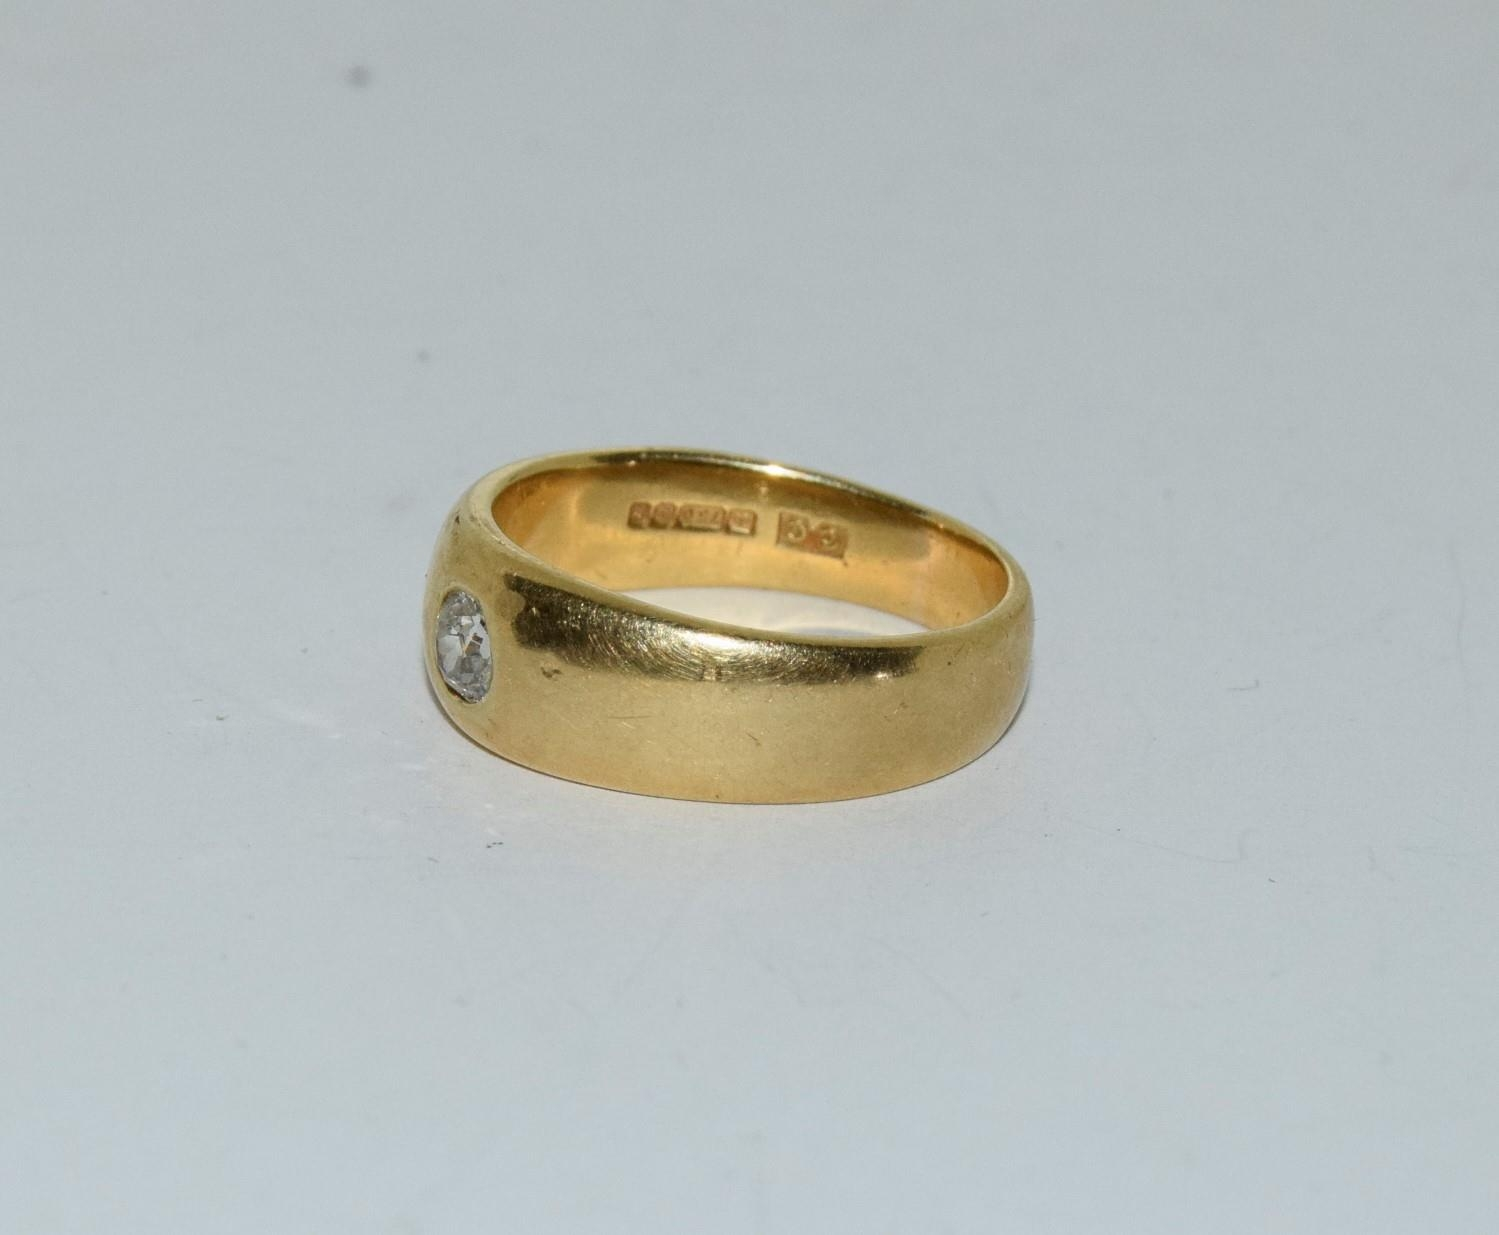 18ct gold mans signet ring set with diamond solitaire of approx 0.25ct size R 9.5gm - Image 4 of 6